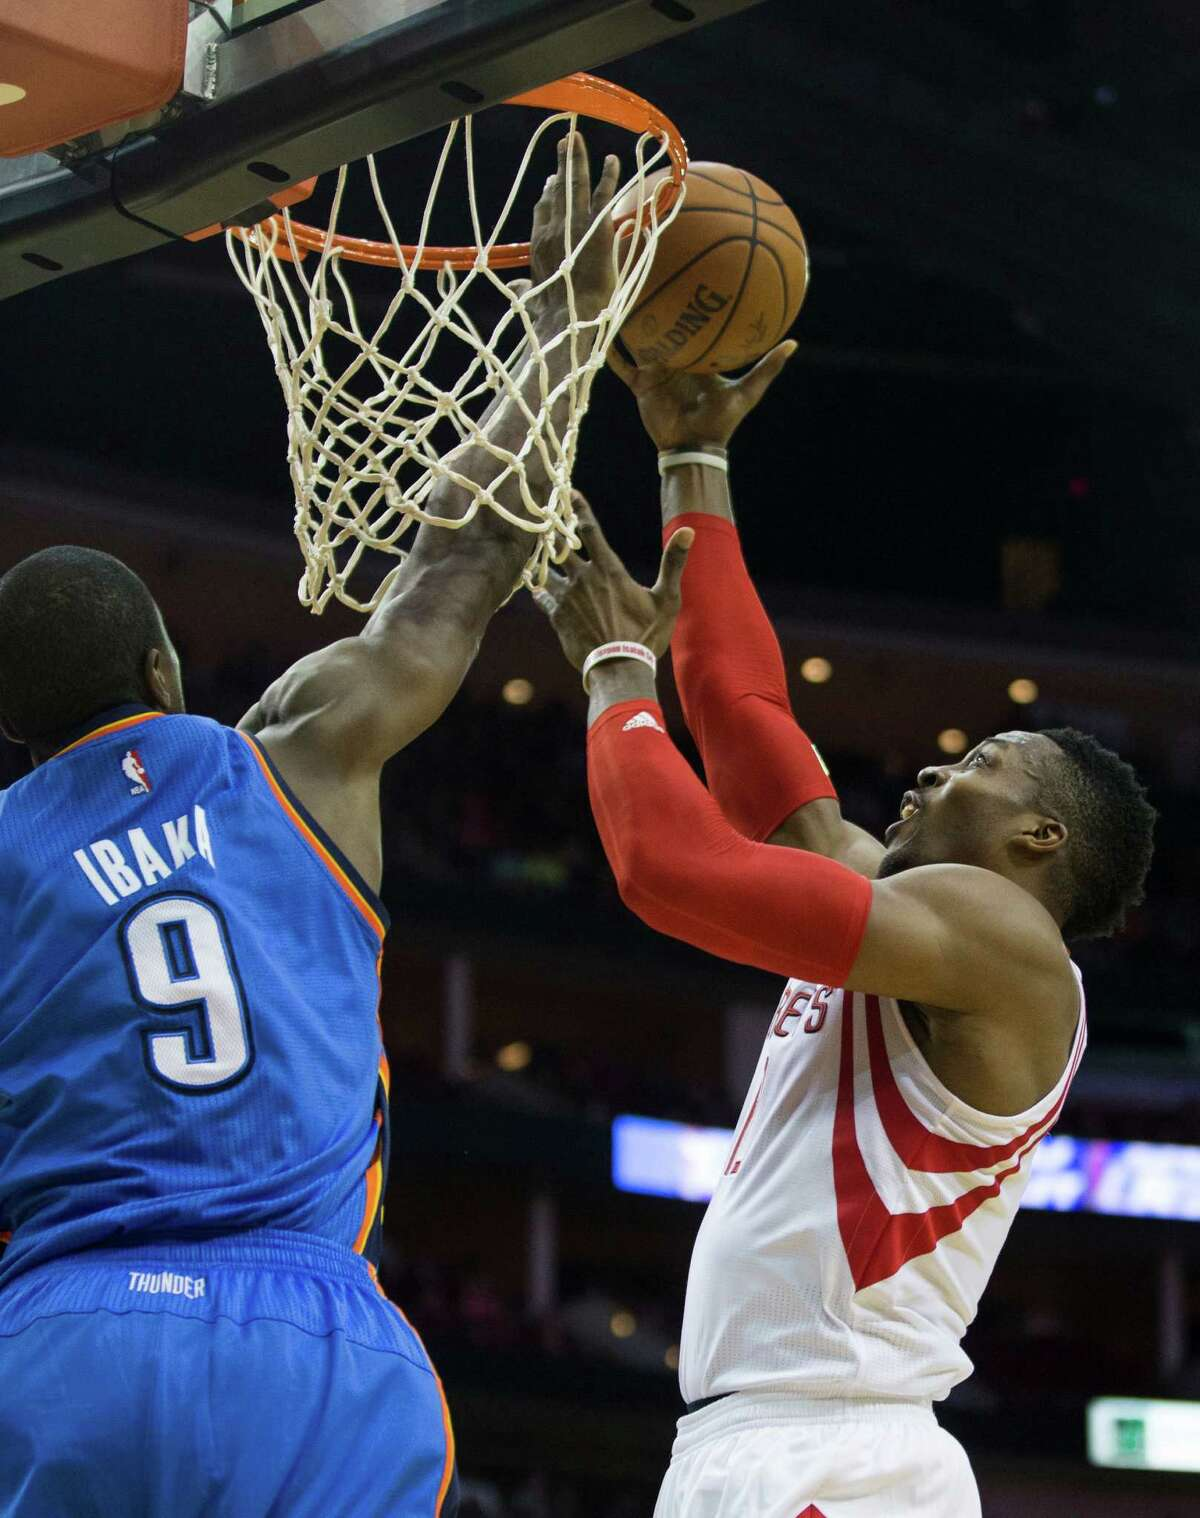 Houston Rockets center Dwight Howard (12) drives in for a layup against Oklahoma City Thunder forward Serge Ibaka (9) during the first half of an NBA basketball game at Toyota Center Monday, Nov. 2, 2015, in Houston. ( Brett Coomer / Houston Chronicle )